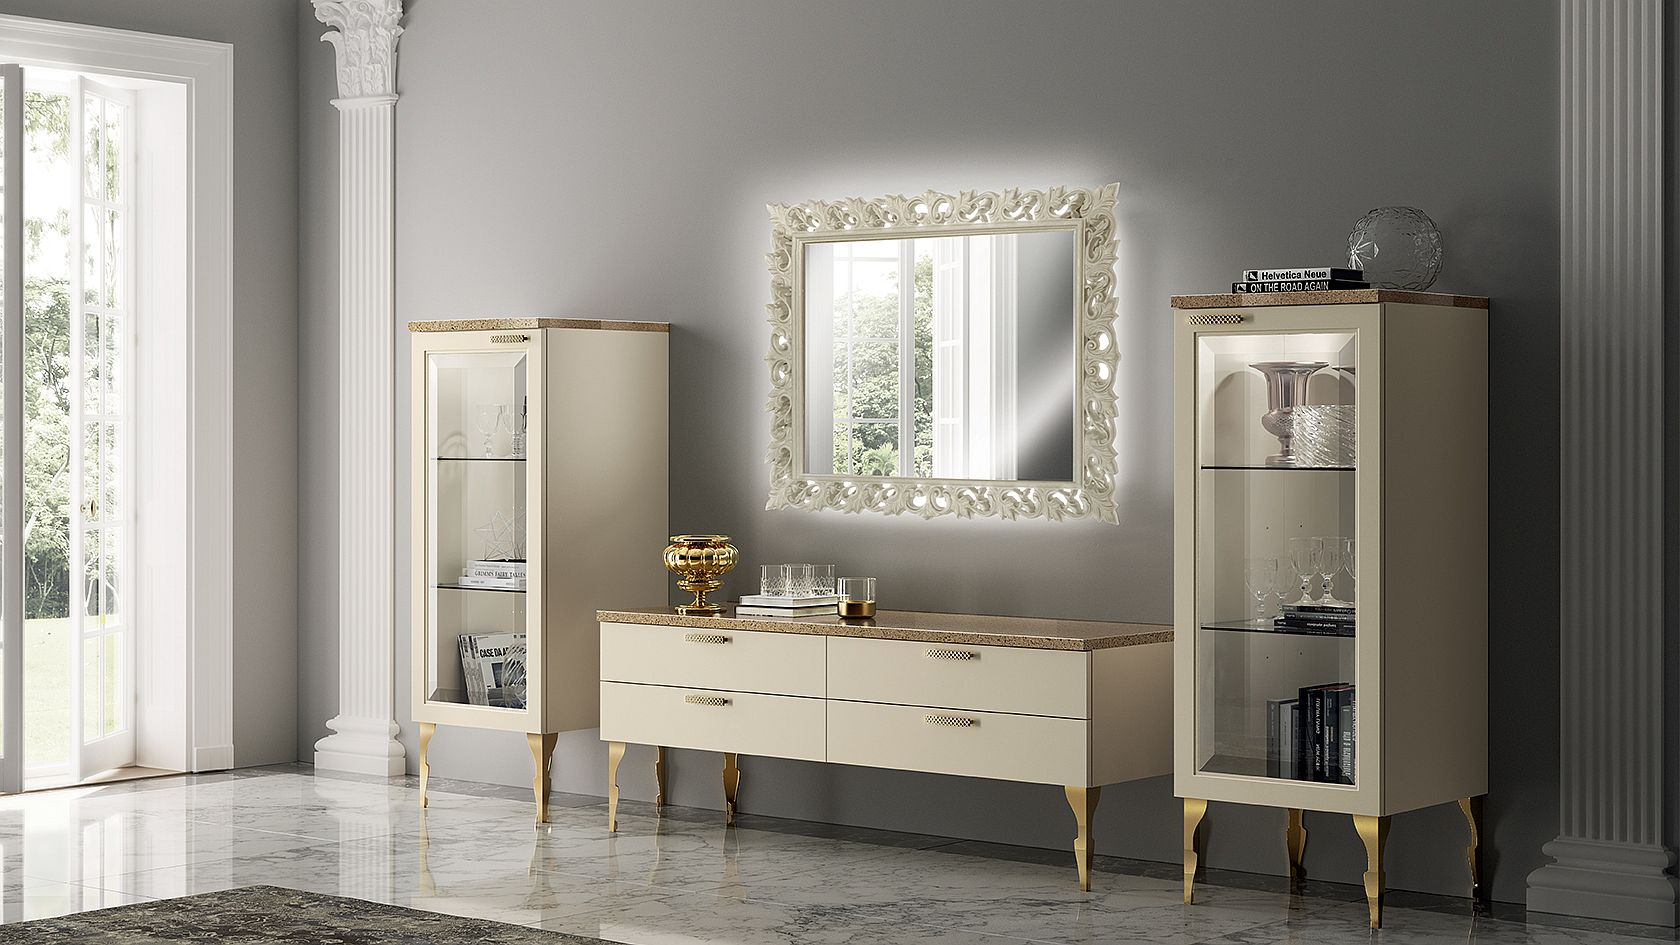 Gold finishes and accents add charm to this otherwise neutral composition full of regal panache